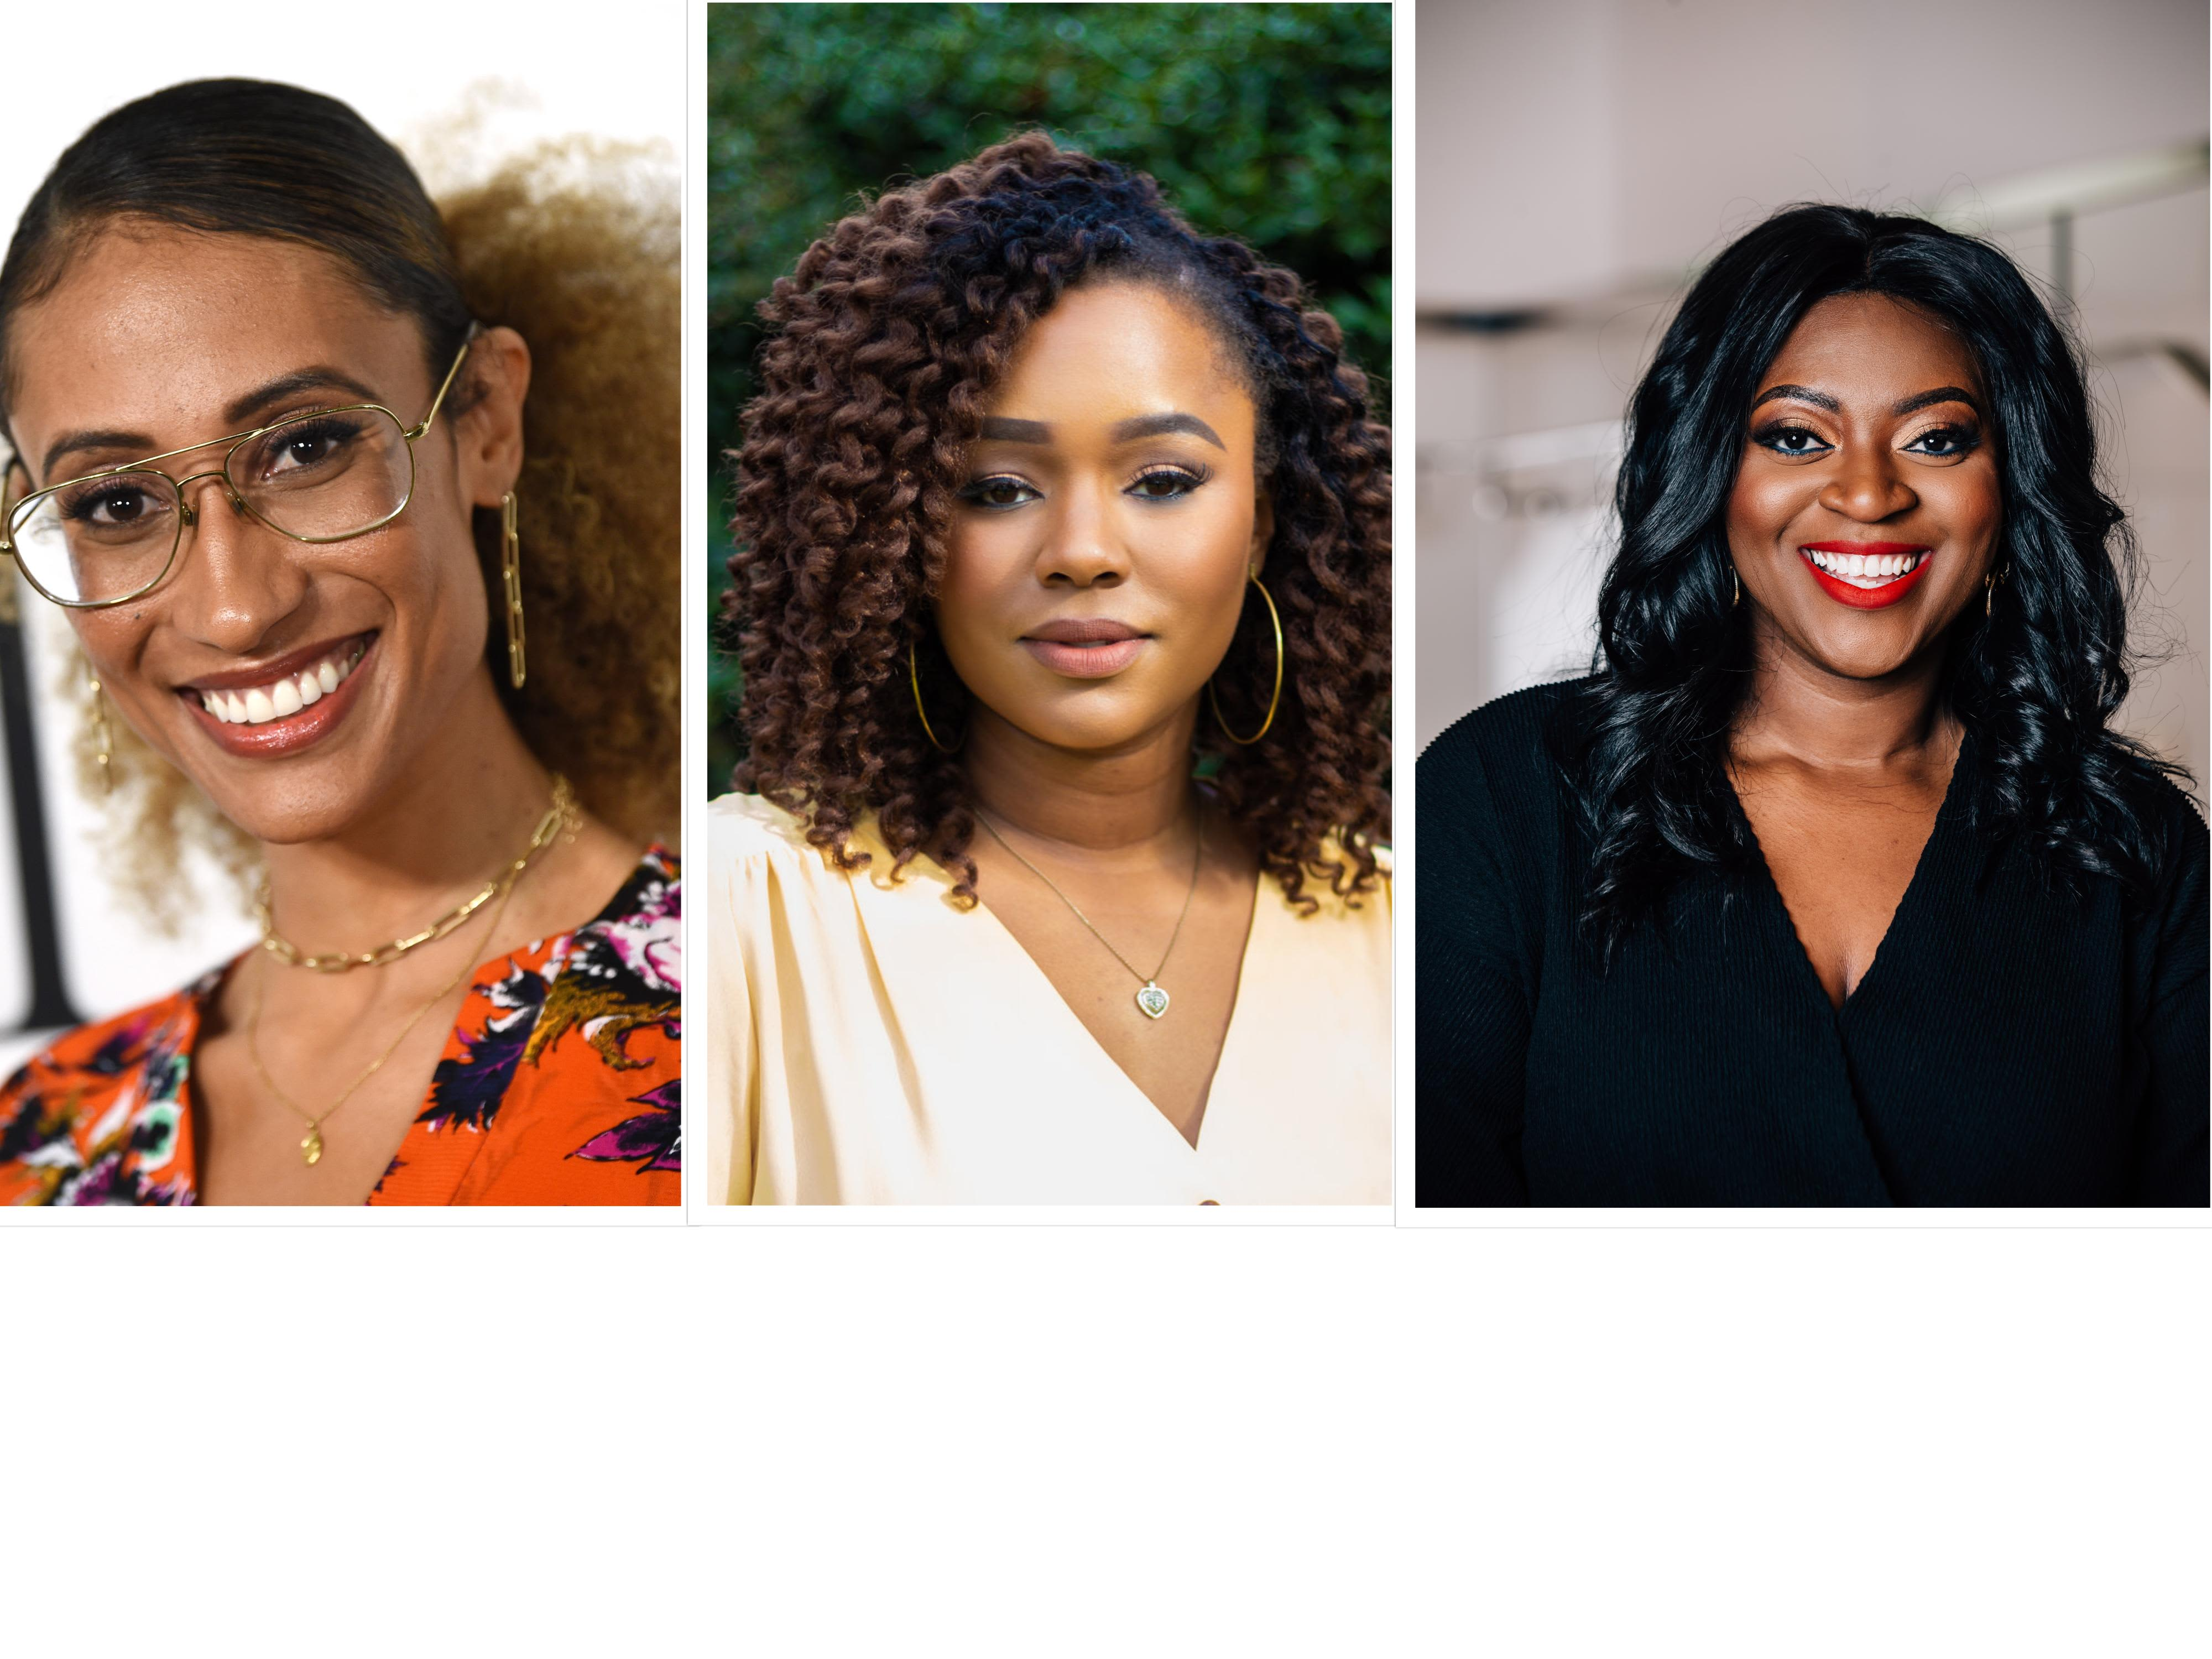 5 black women on how women, employers and colleagues can work together to close the pay gap